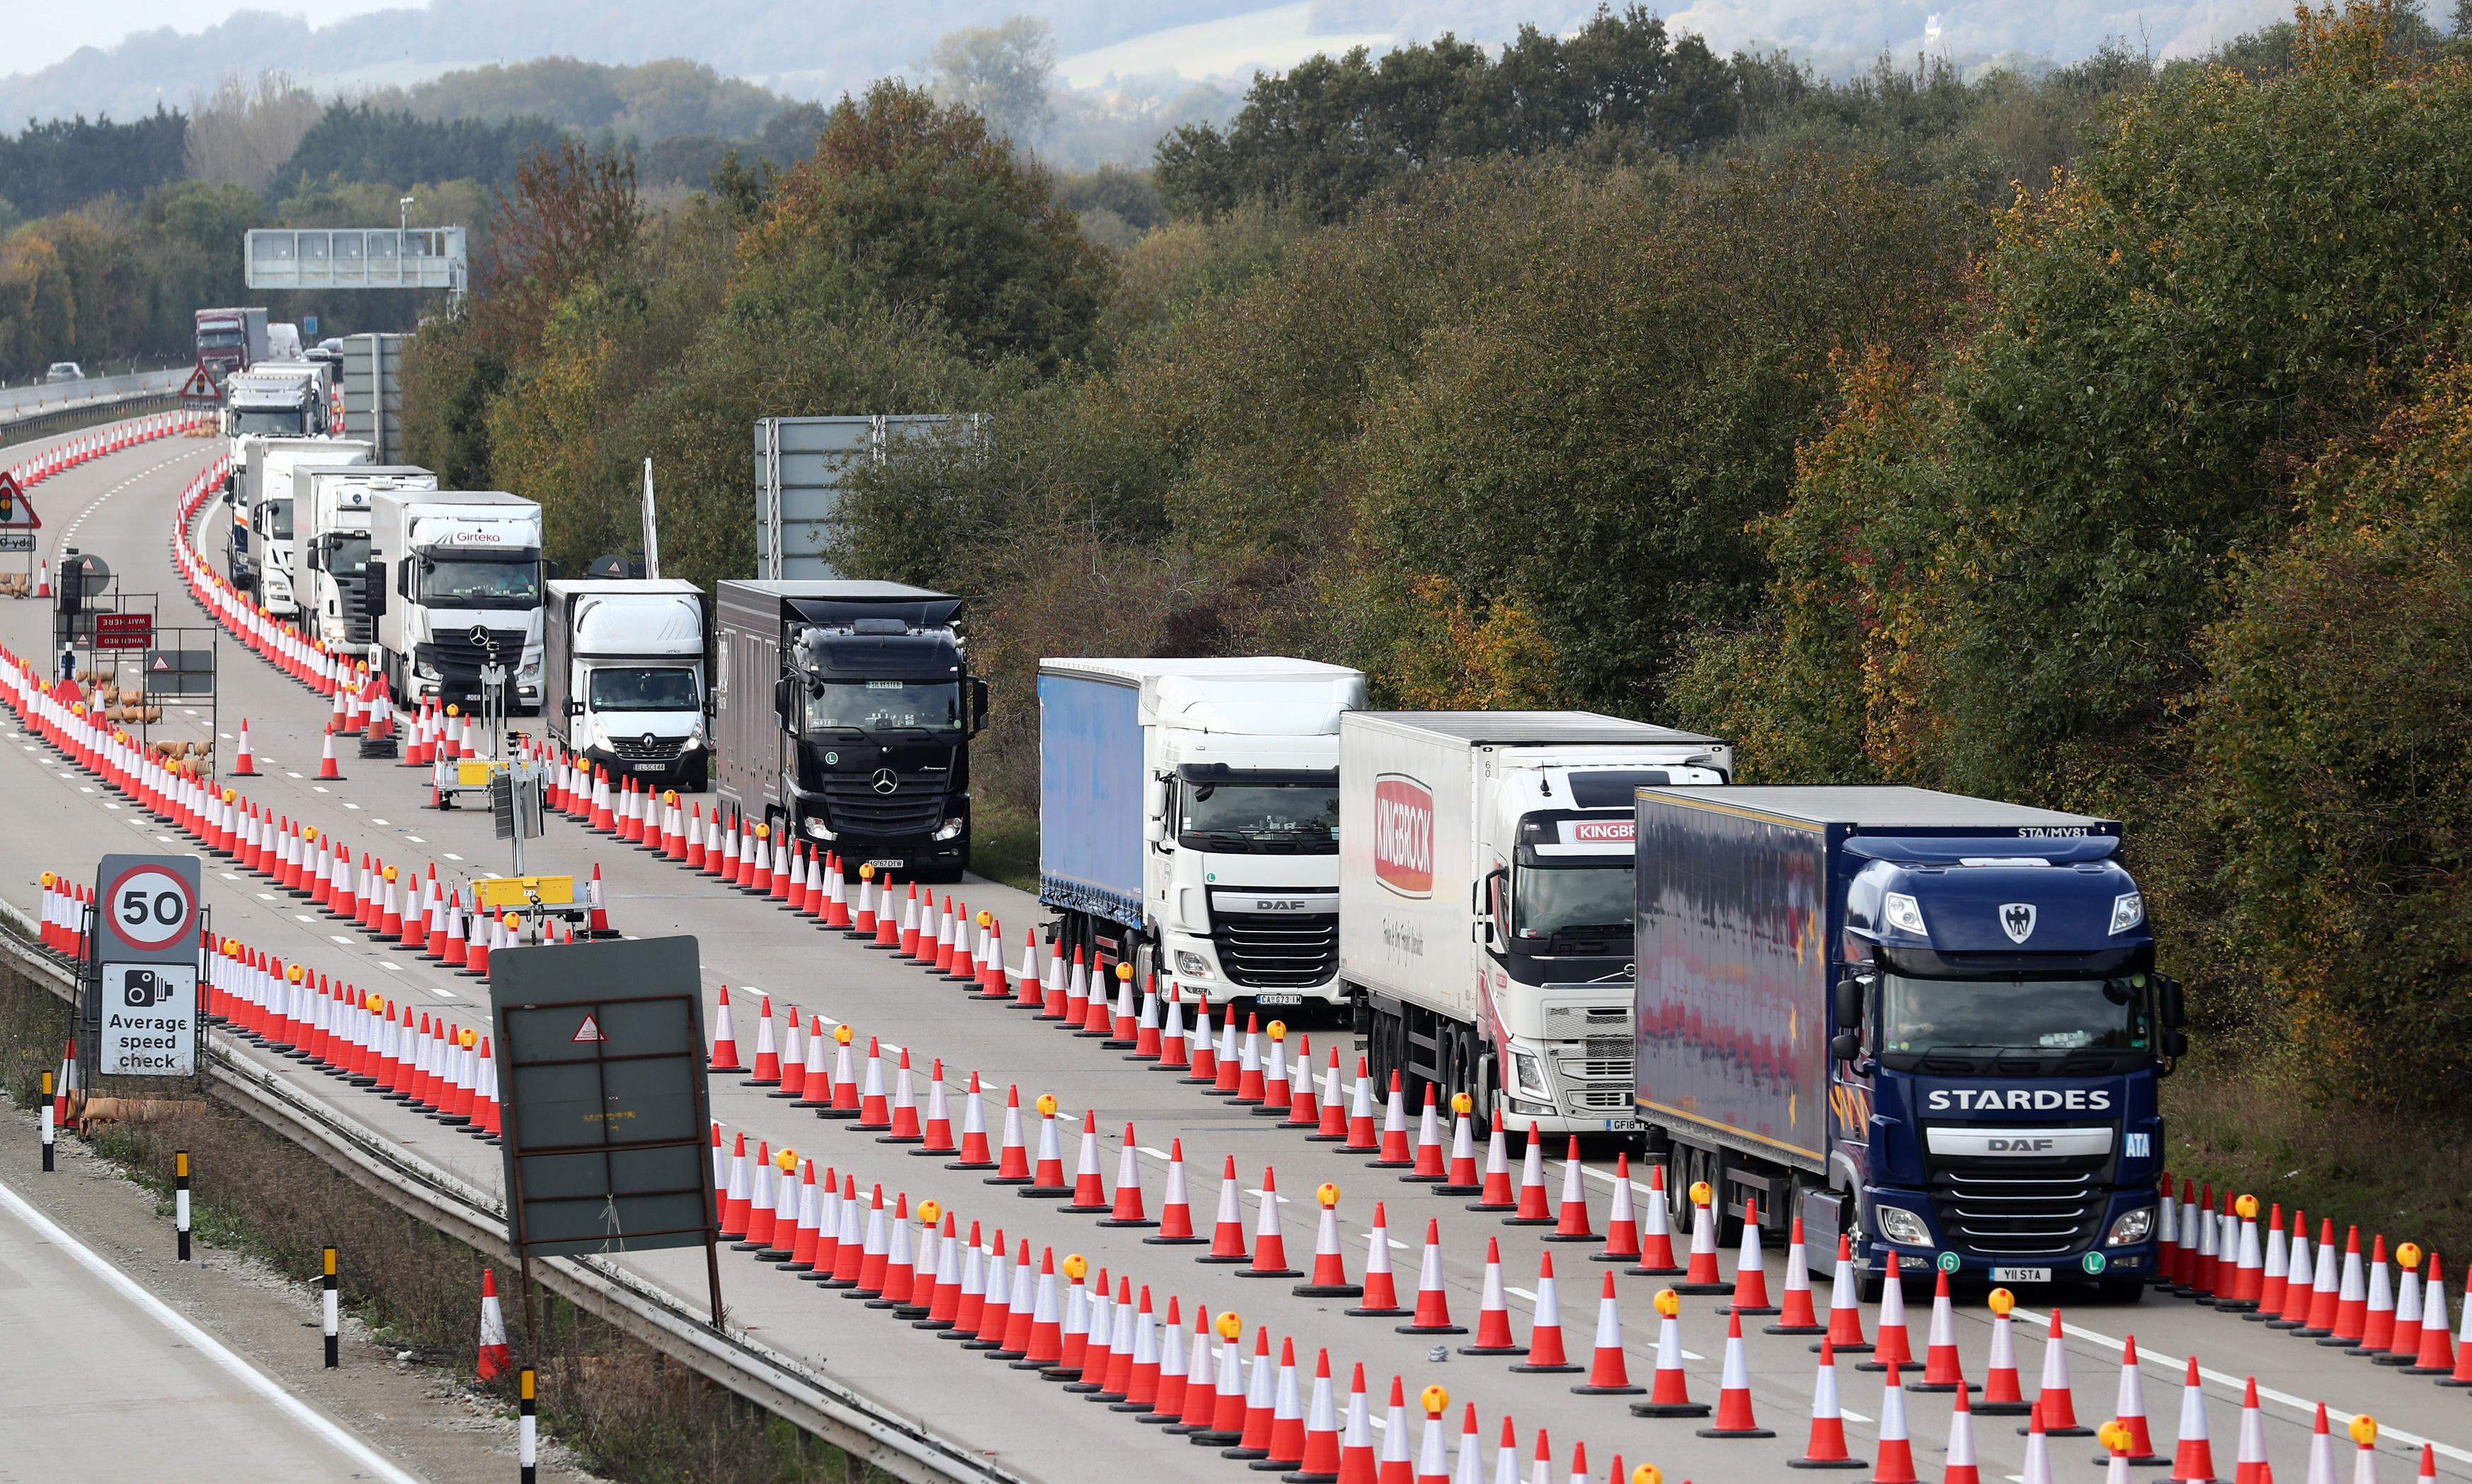 £30m no-deal Brexit scheme dismantled on roads to Dover